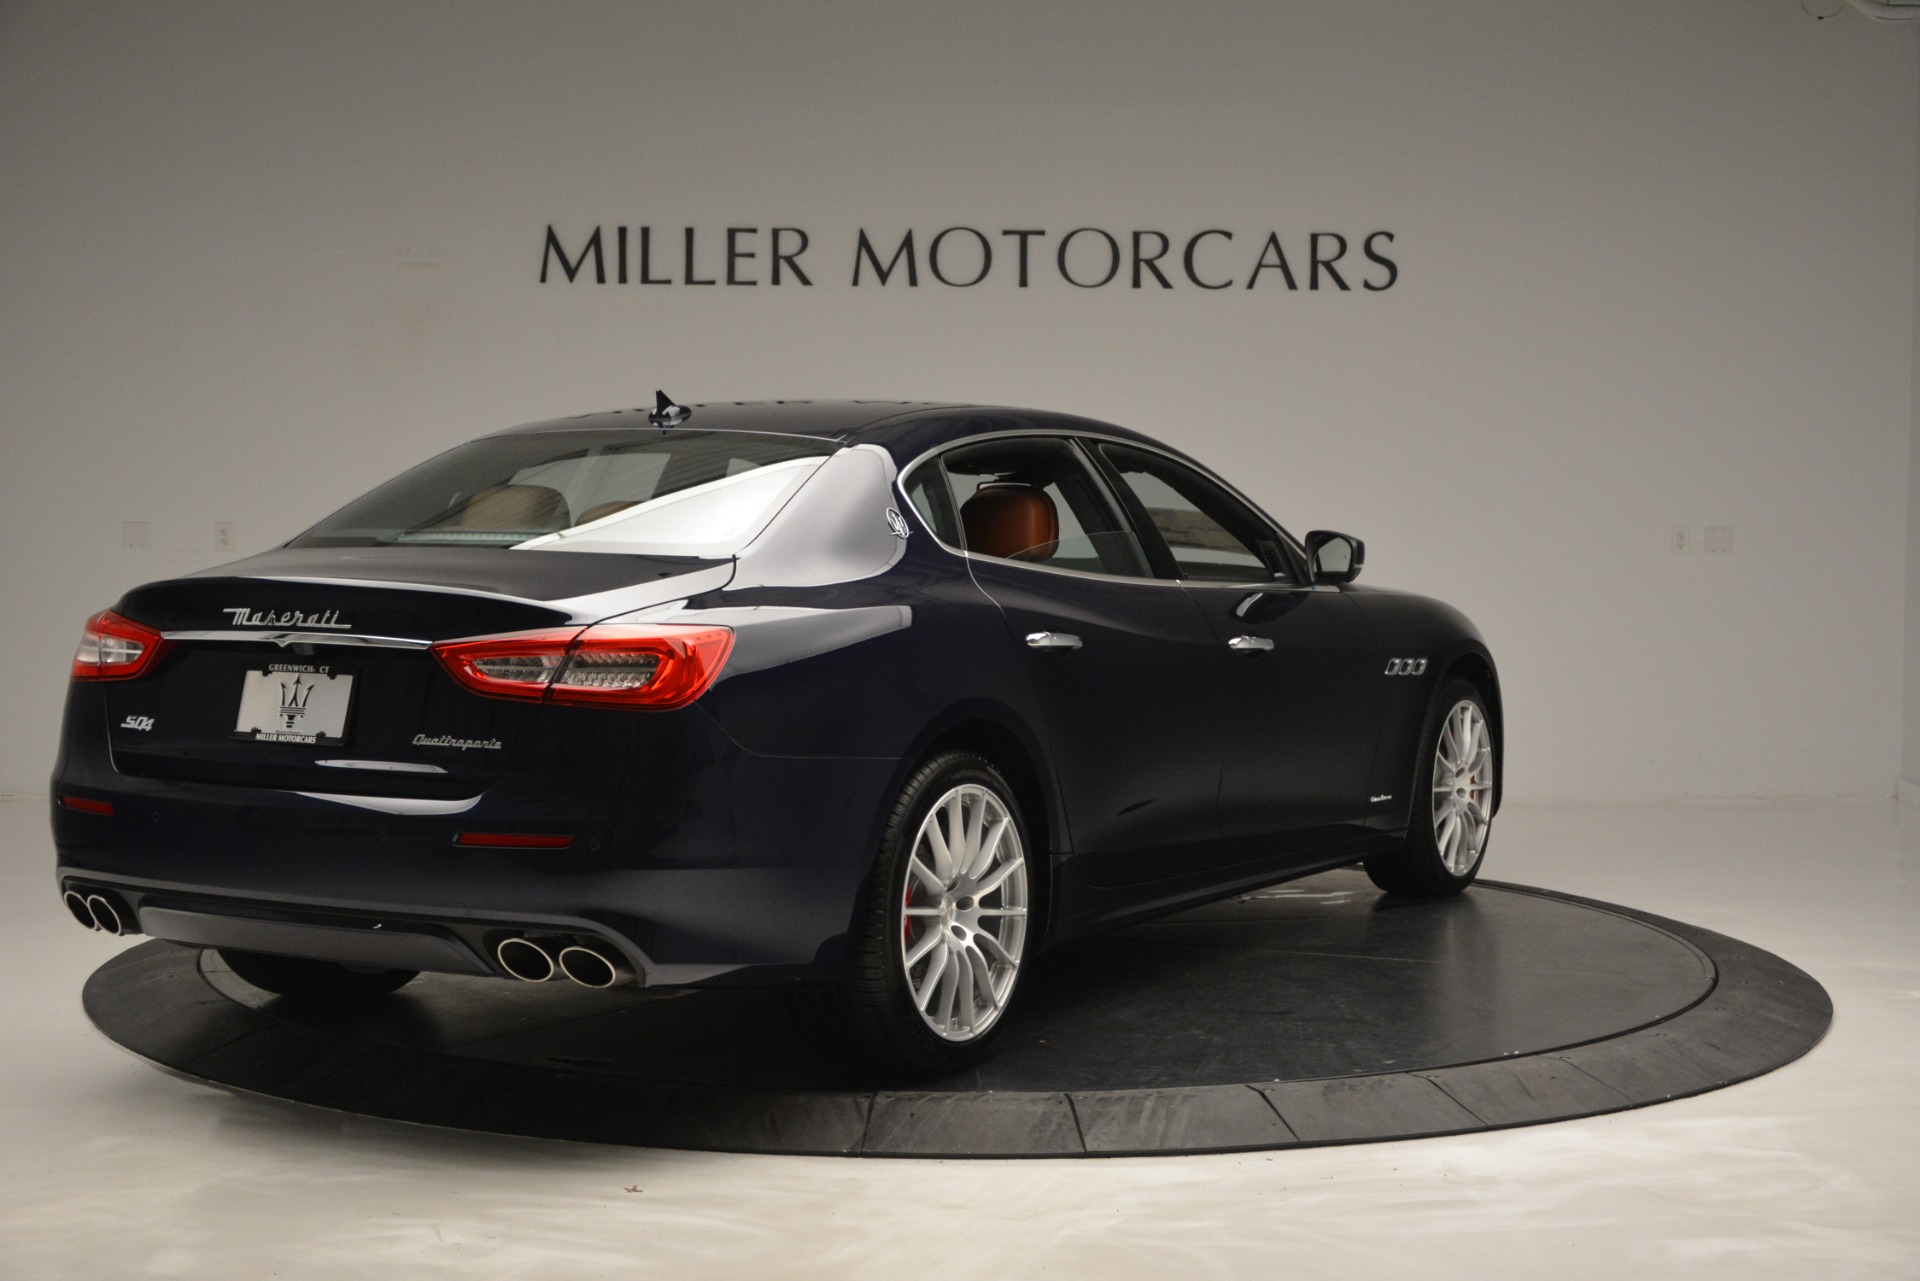 New 2019 Maserati Quattroporte S Q4 GranLusso For Sale In Greenwich, CT 2620_p7